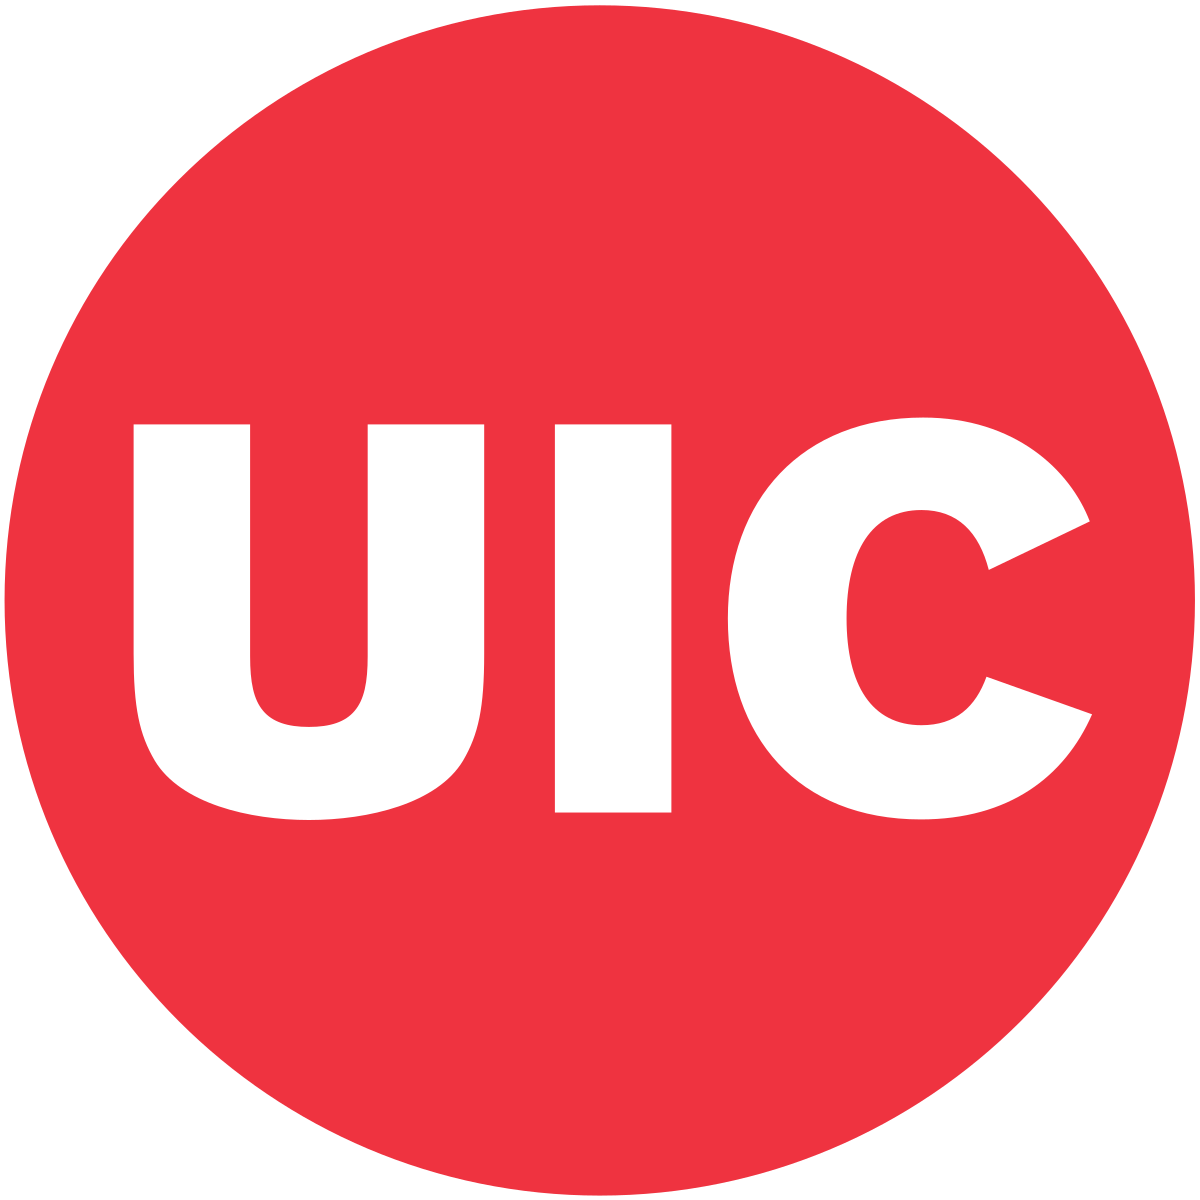 Trường Đại Học University of Illinois at Chicago – Chicago, Illinois, Mỹ